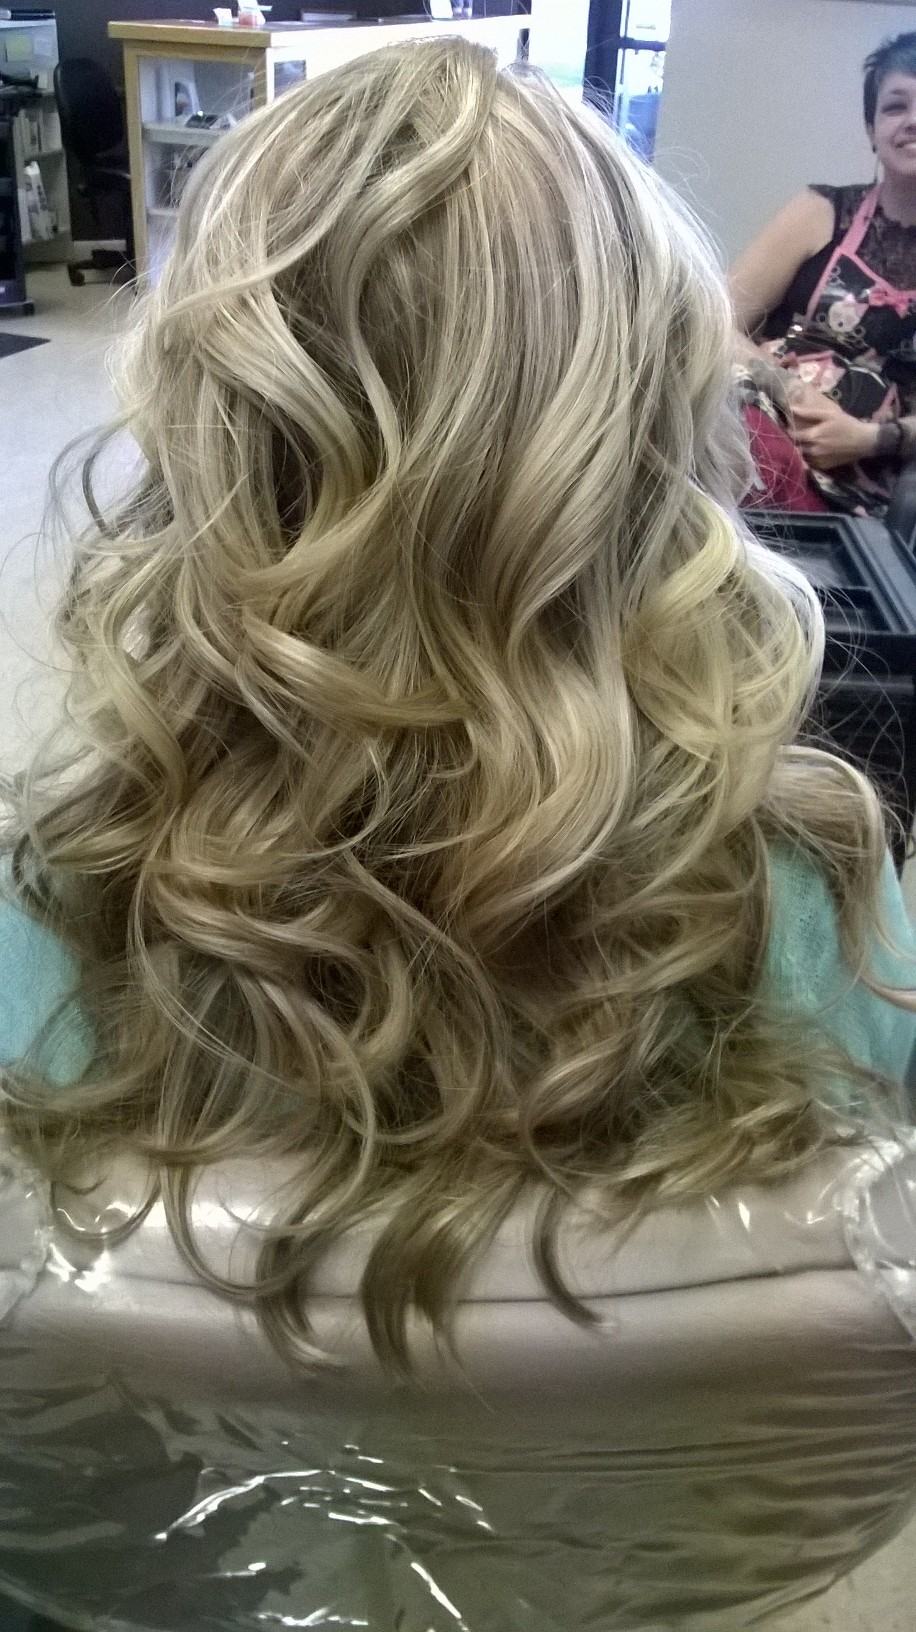 Balayage Caps Or Foils What Works Best For You Hair To Stay